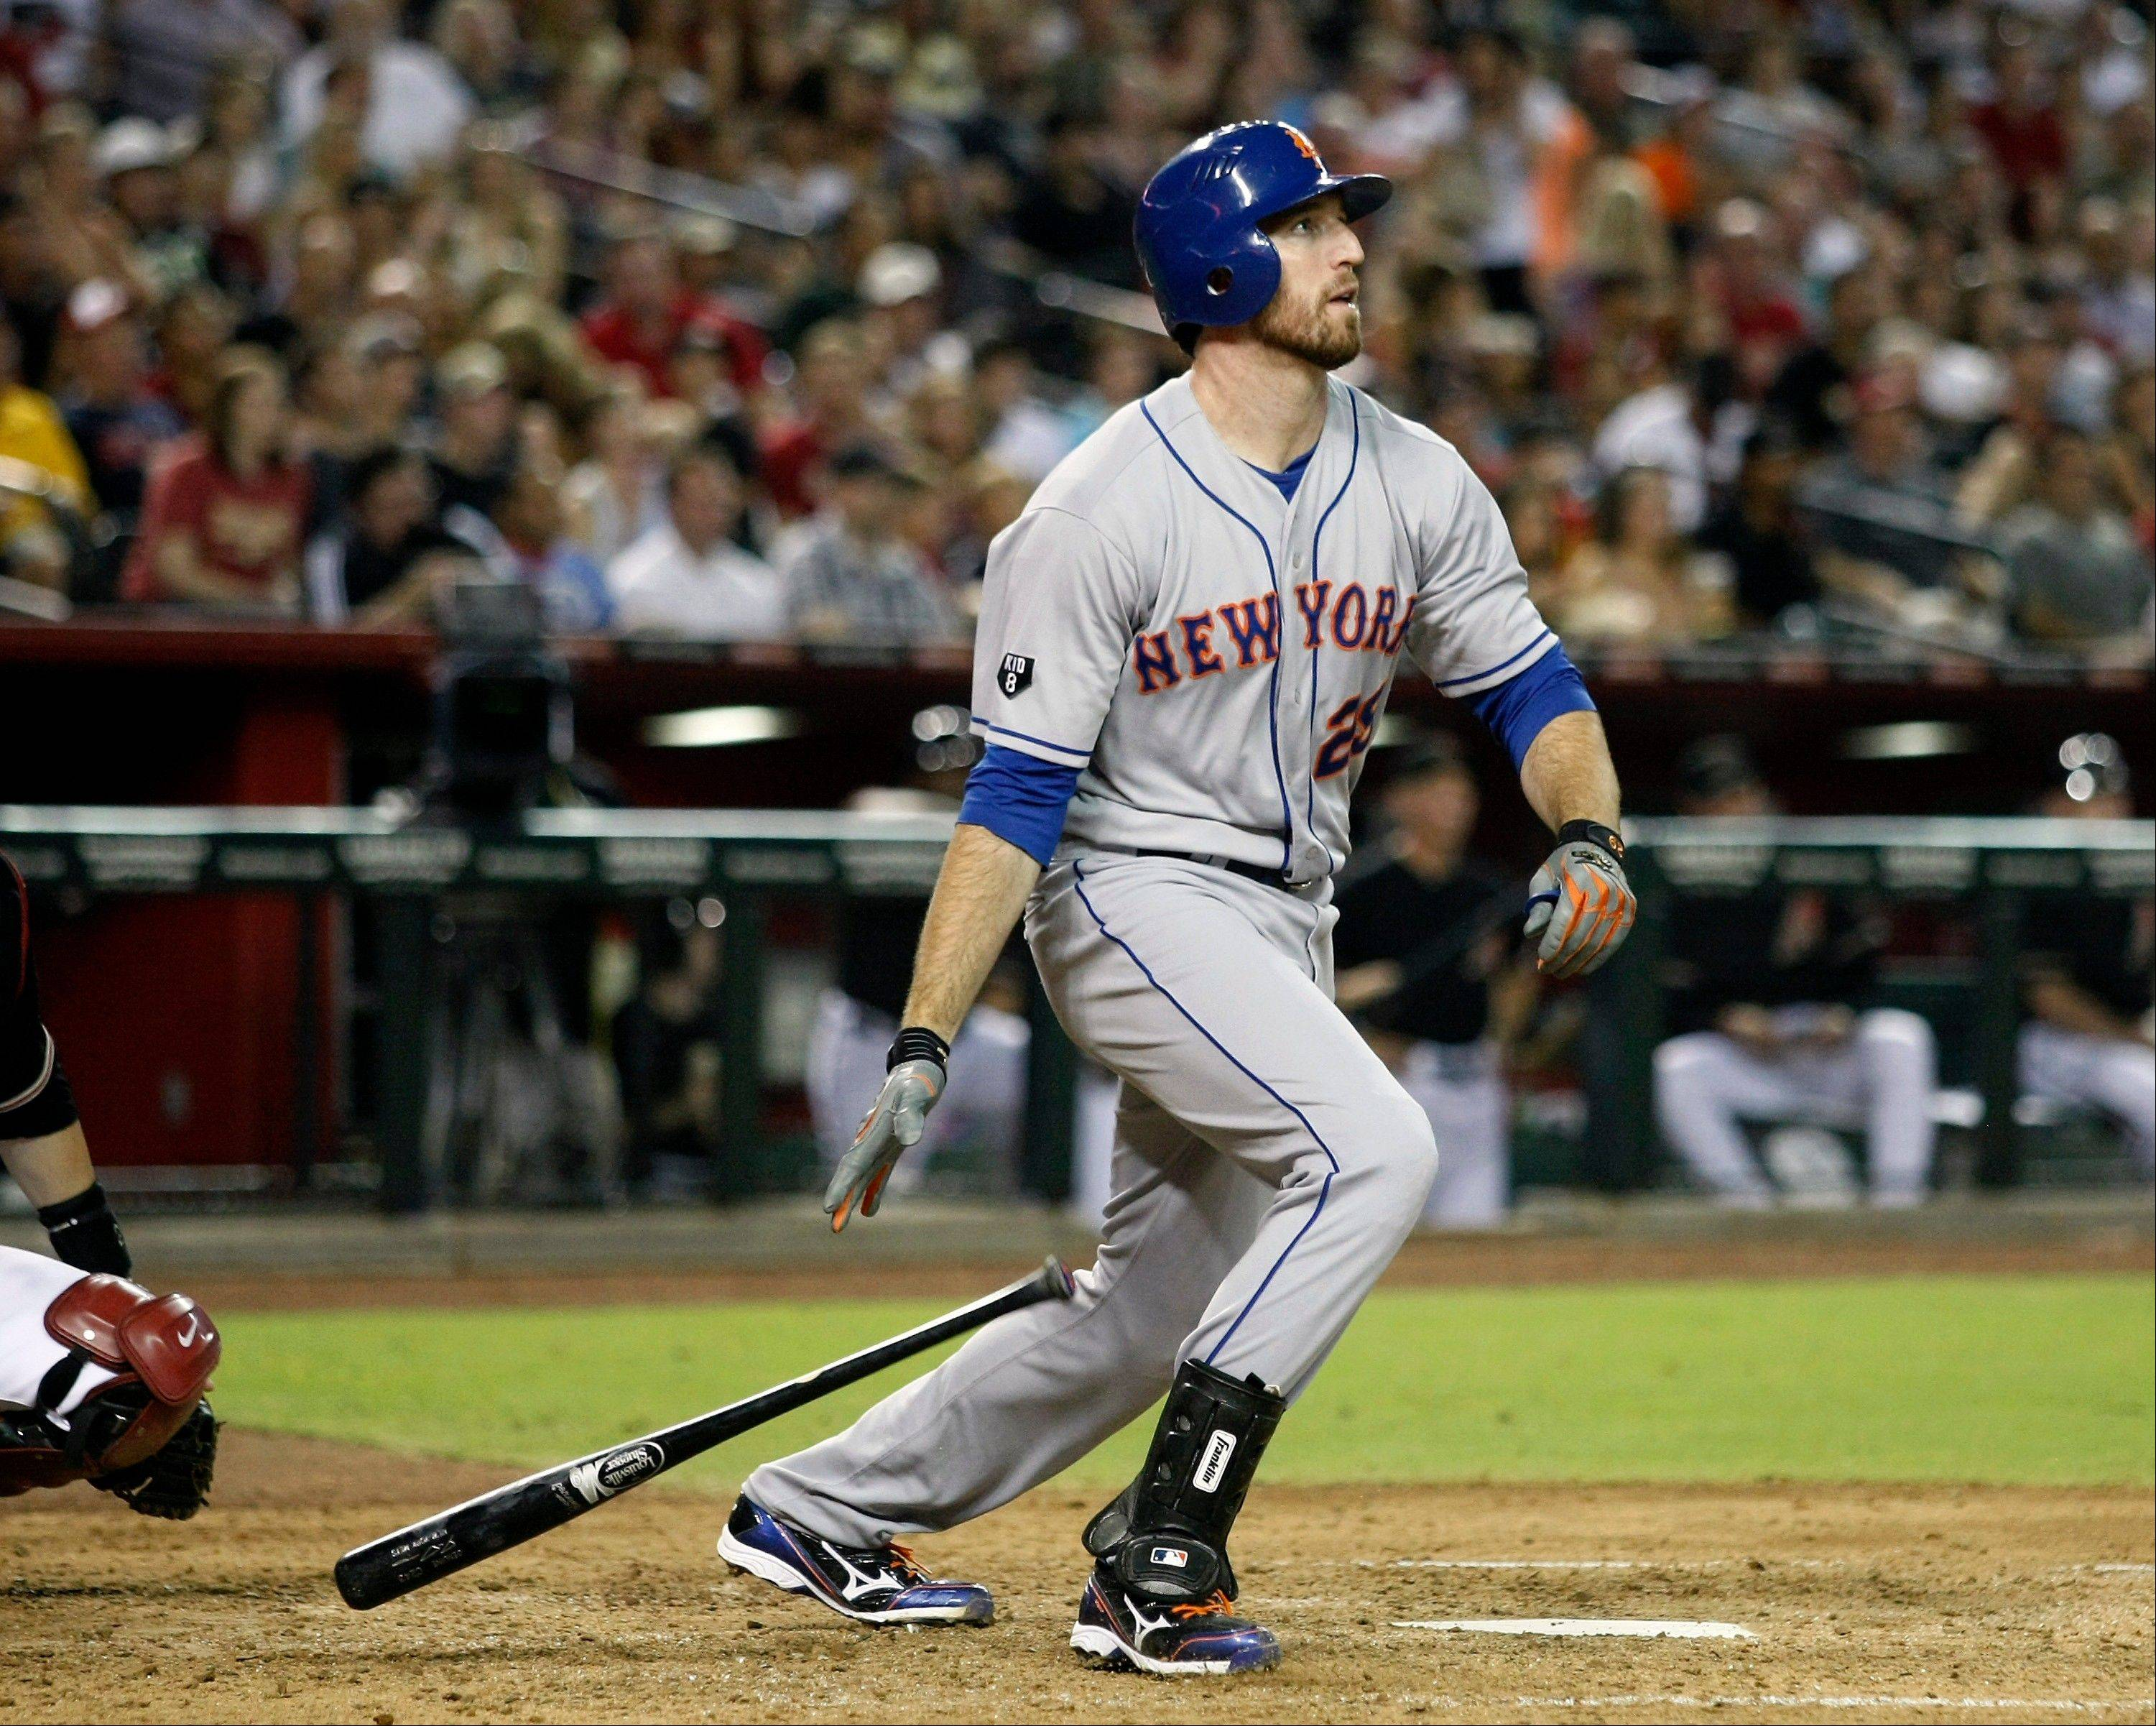 The Mets� Ike Davis hits his third home run of the game Saturday against the Diamondbacks in Phoenix.